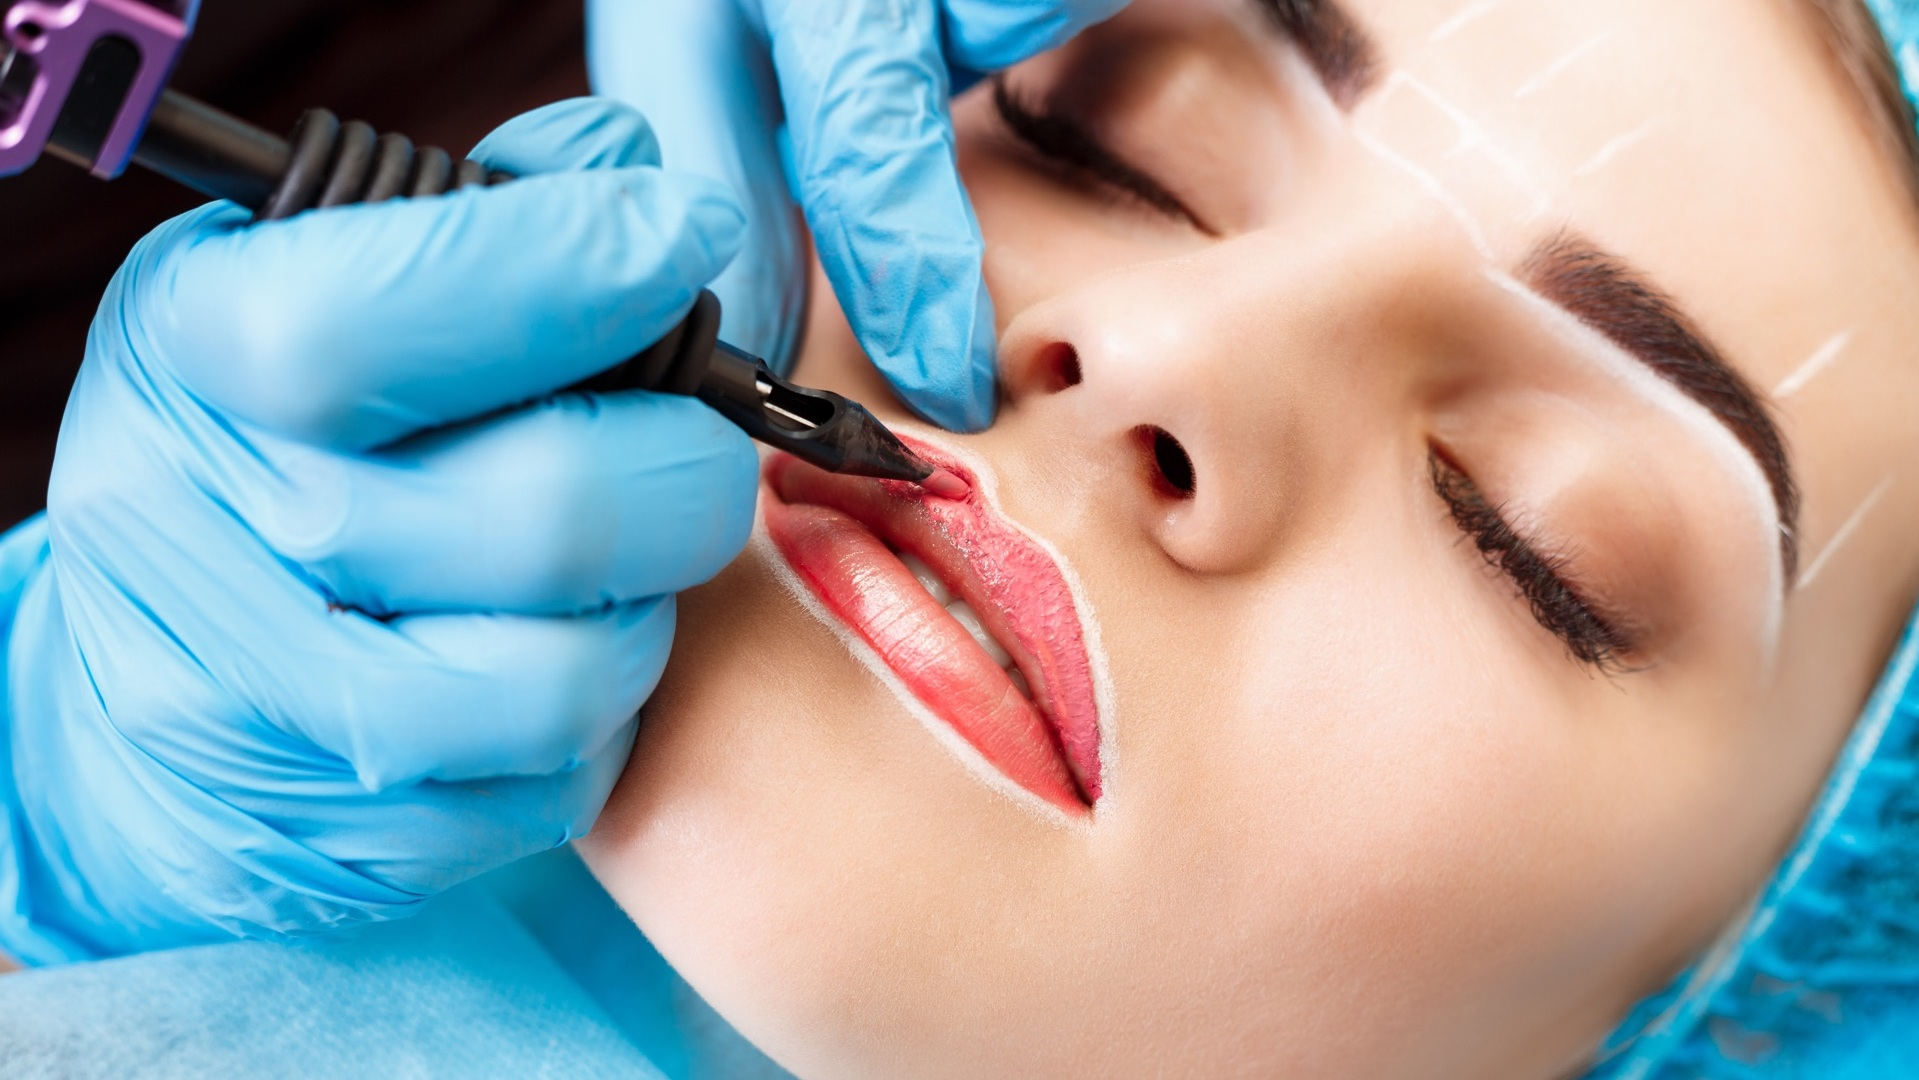 Permanent Makeup - Permanent makeup is the application of colored pigments to the brows, lips and eyes to create the look of perfectly applied makeup.Starting at $200